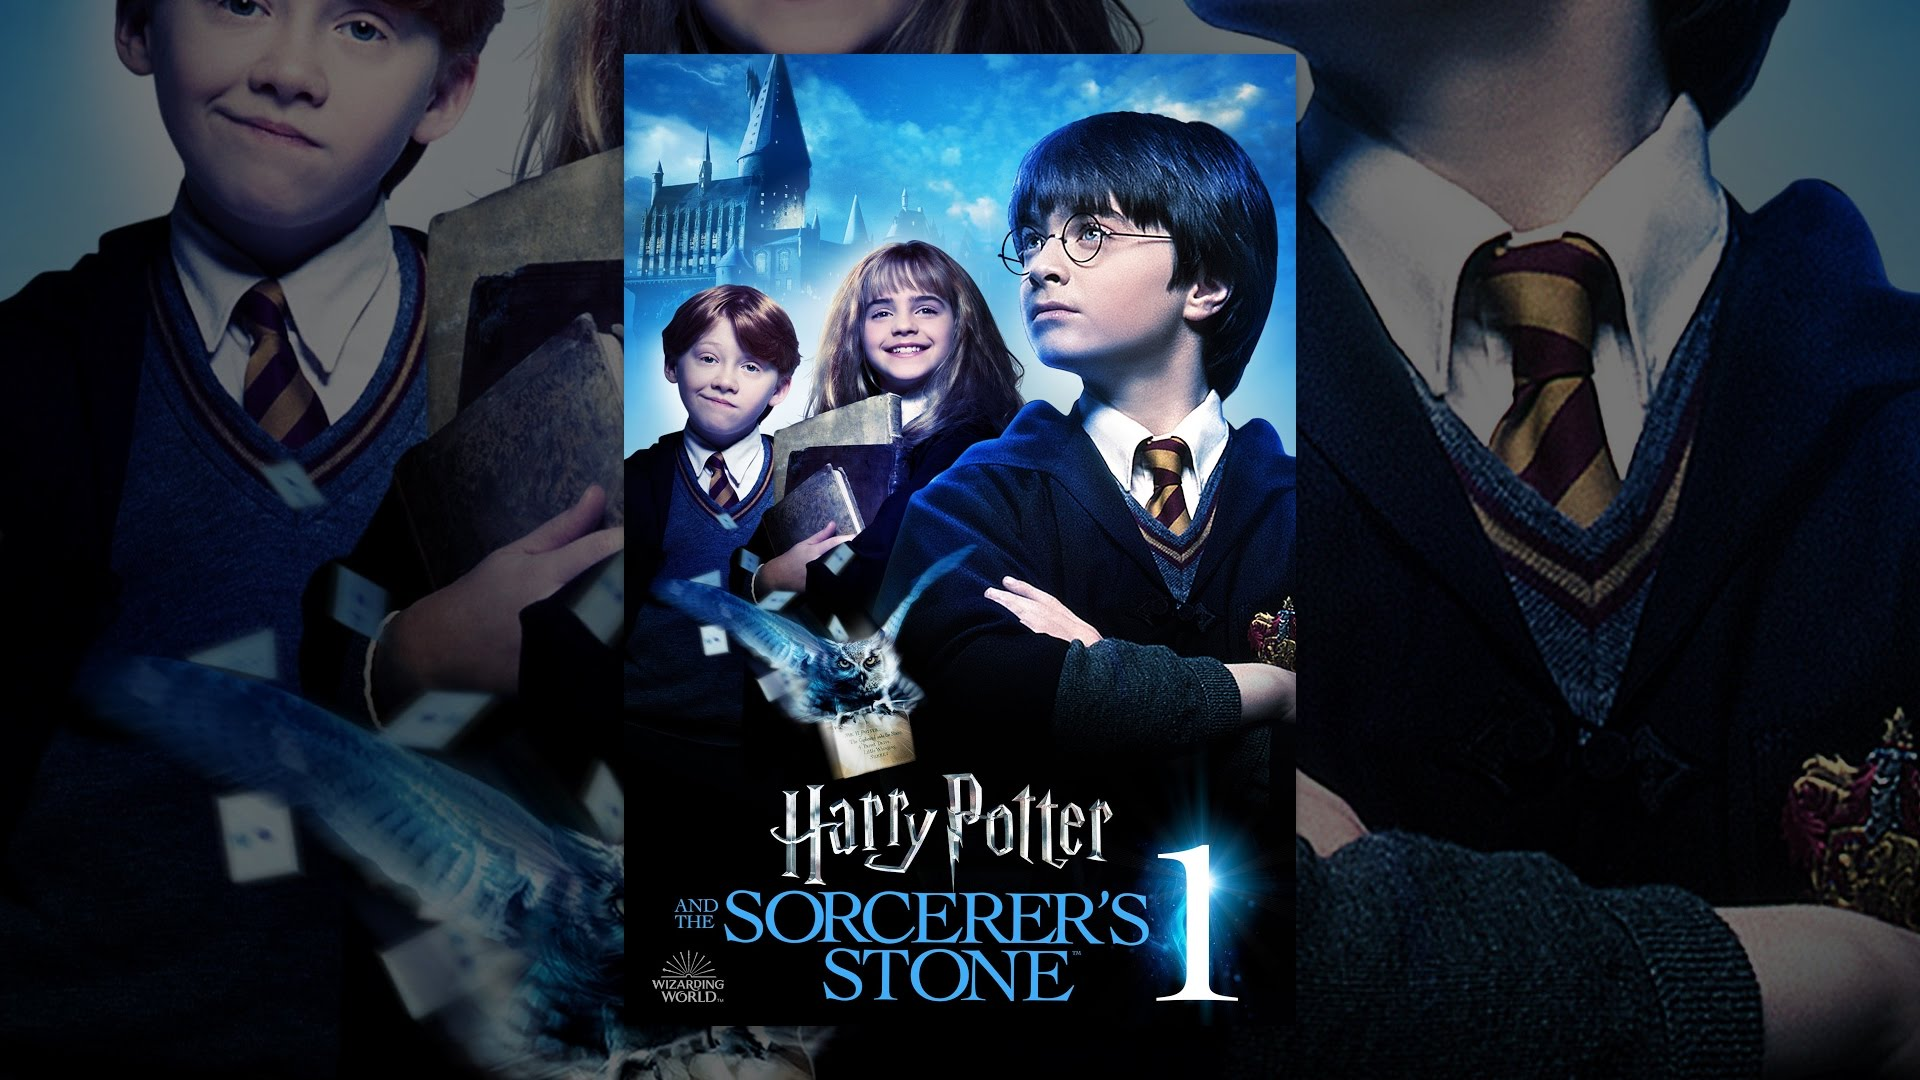 a comparison of harry potter and sorcerers stone and alices adventures in wonderland Harry potter and the philosopher's stone is a unique blend of fantasy novel, mystery story, school story, adventure novel, humorous story, and epic the plot as a mystery story, the plotting of the novel is highly skilfull.